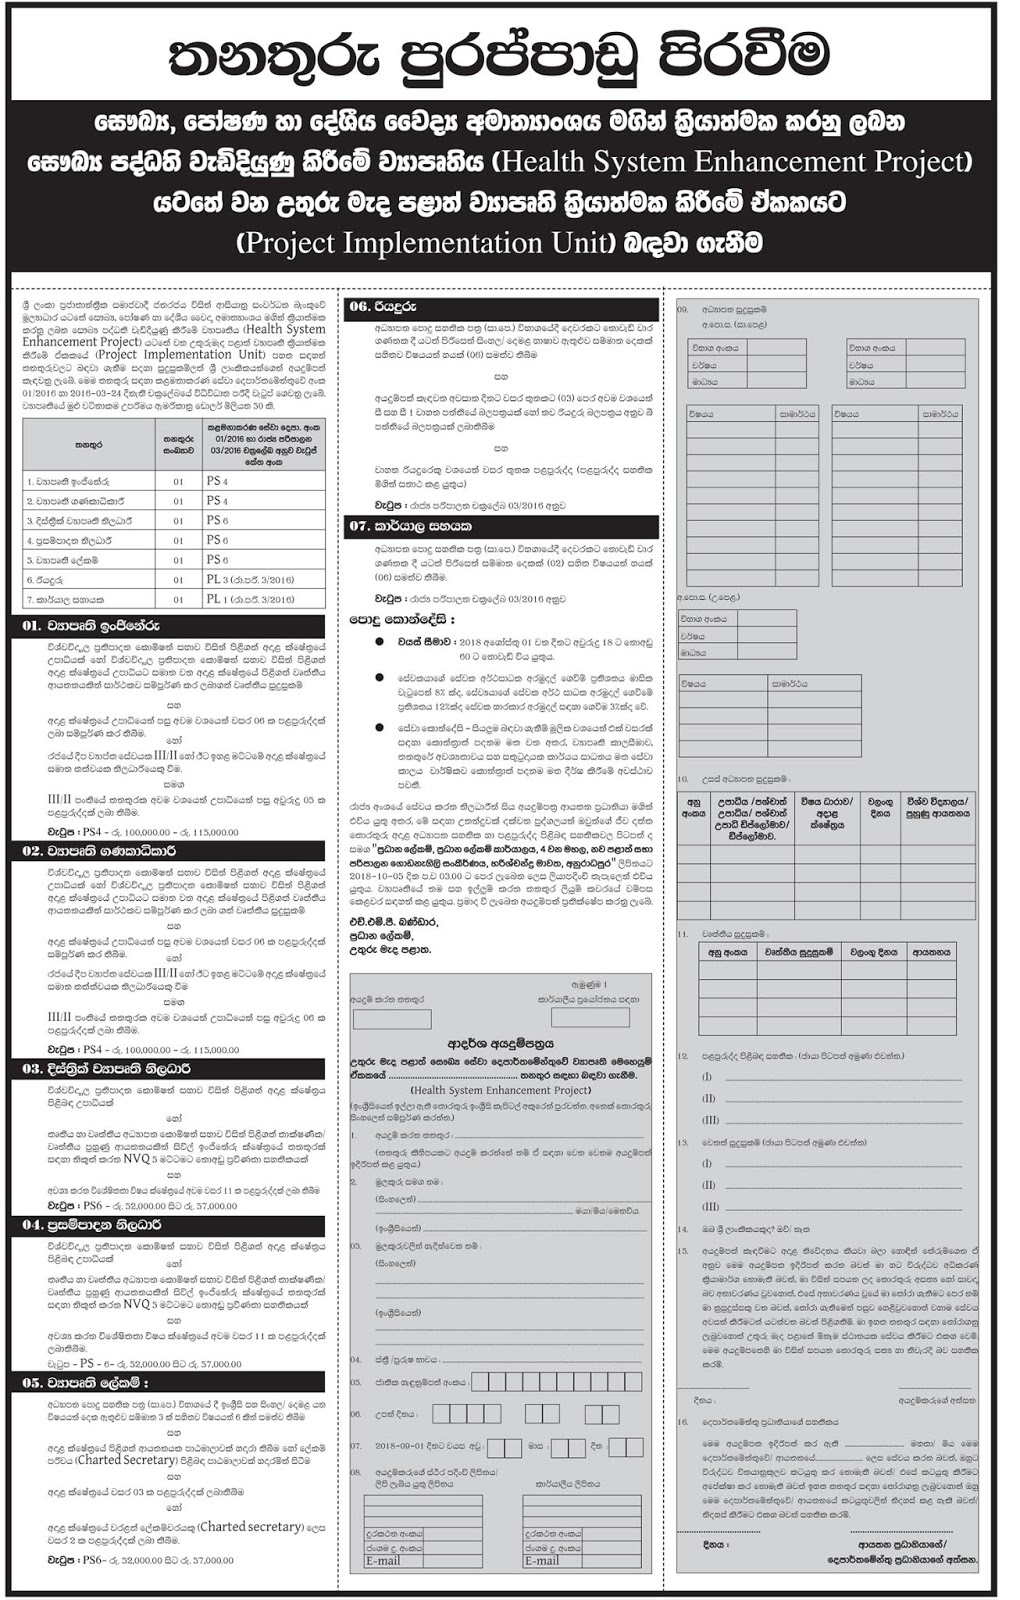 Office Assistant, Driver, Project Accountant , Procurement Officer - Ministry of Health